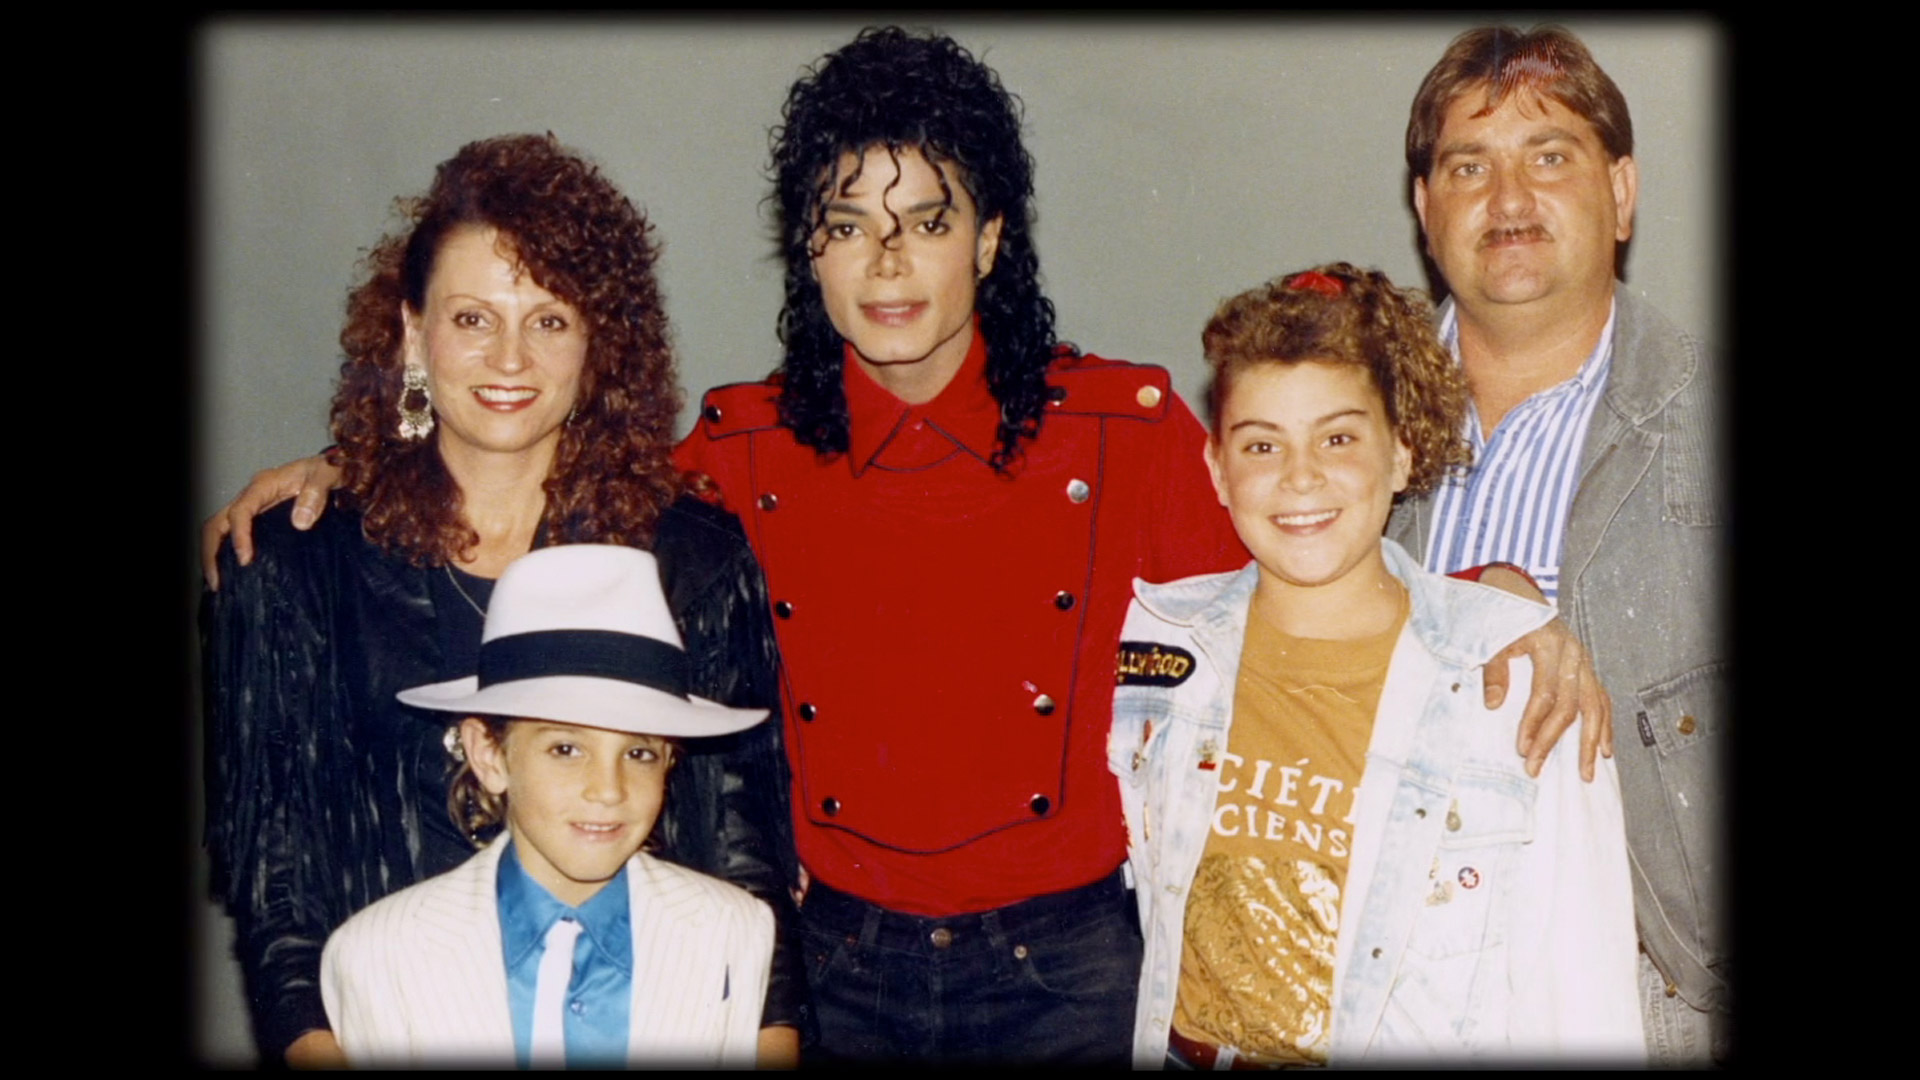 Leaving Neverland makes a devastating case against Michael Jackson